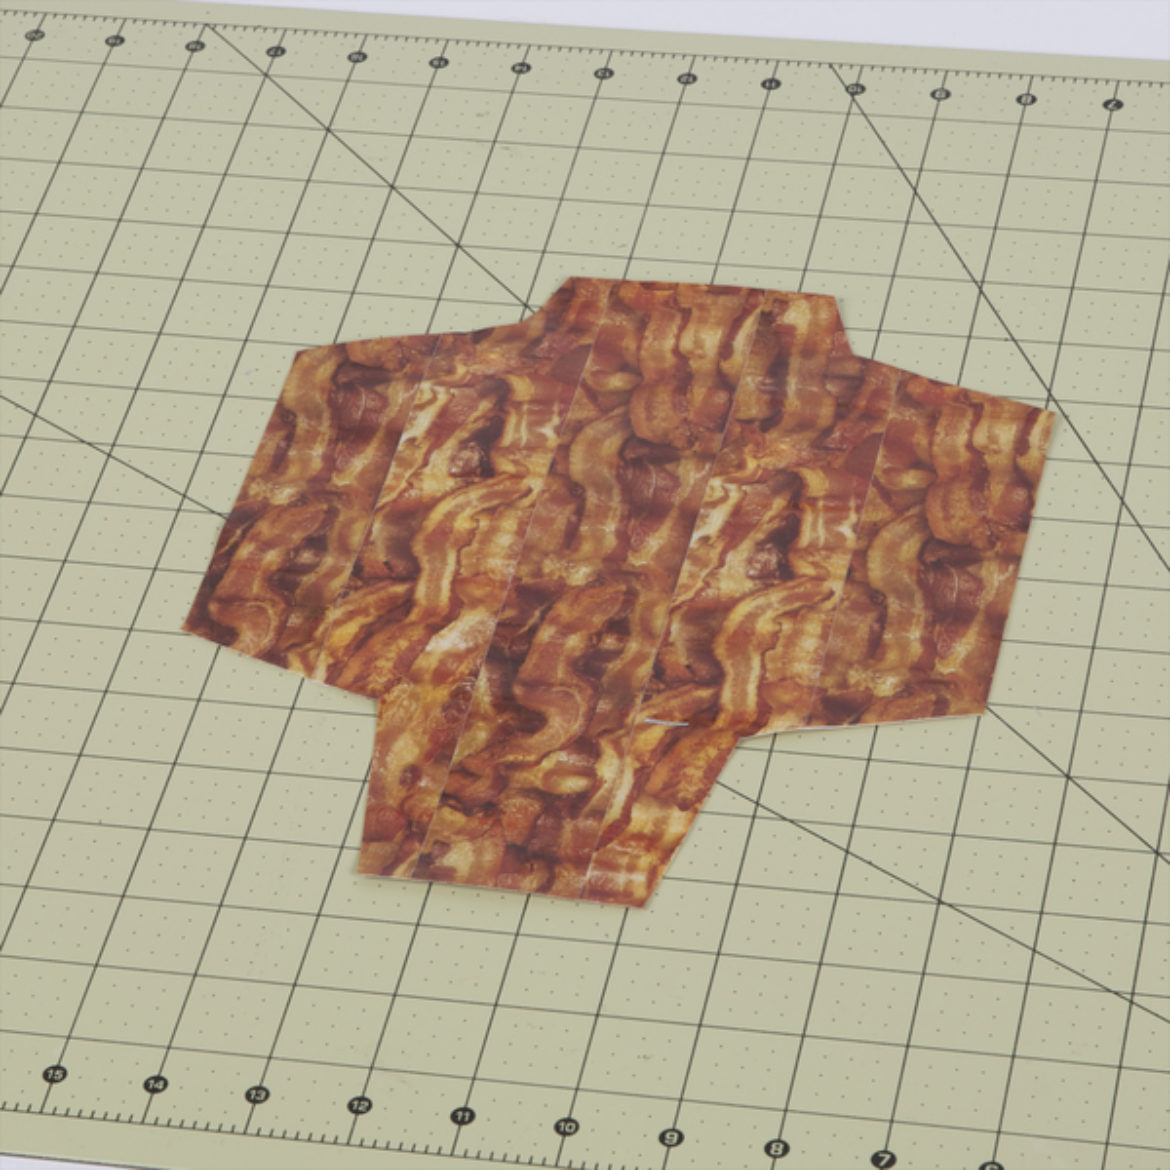 Template shape cut out from the drawing made in the previous step